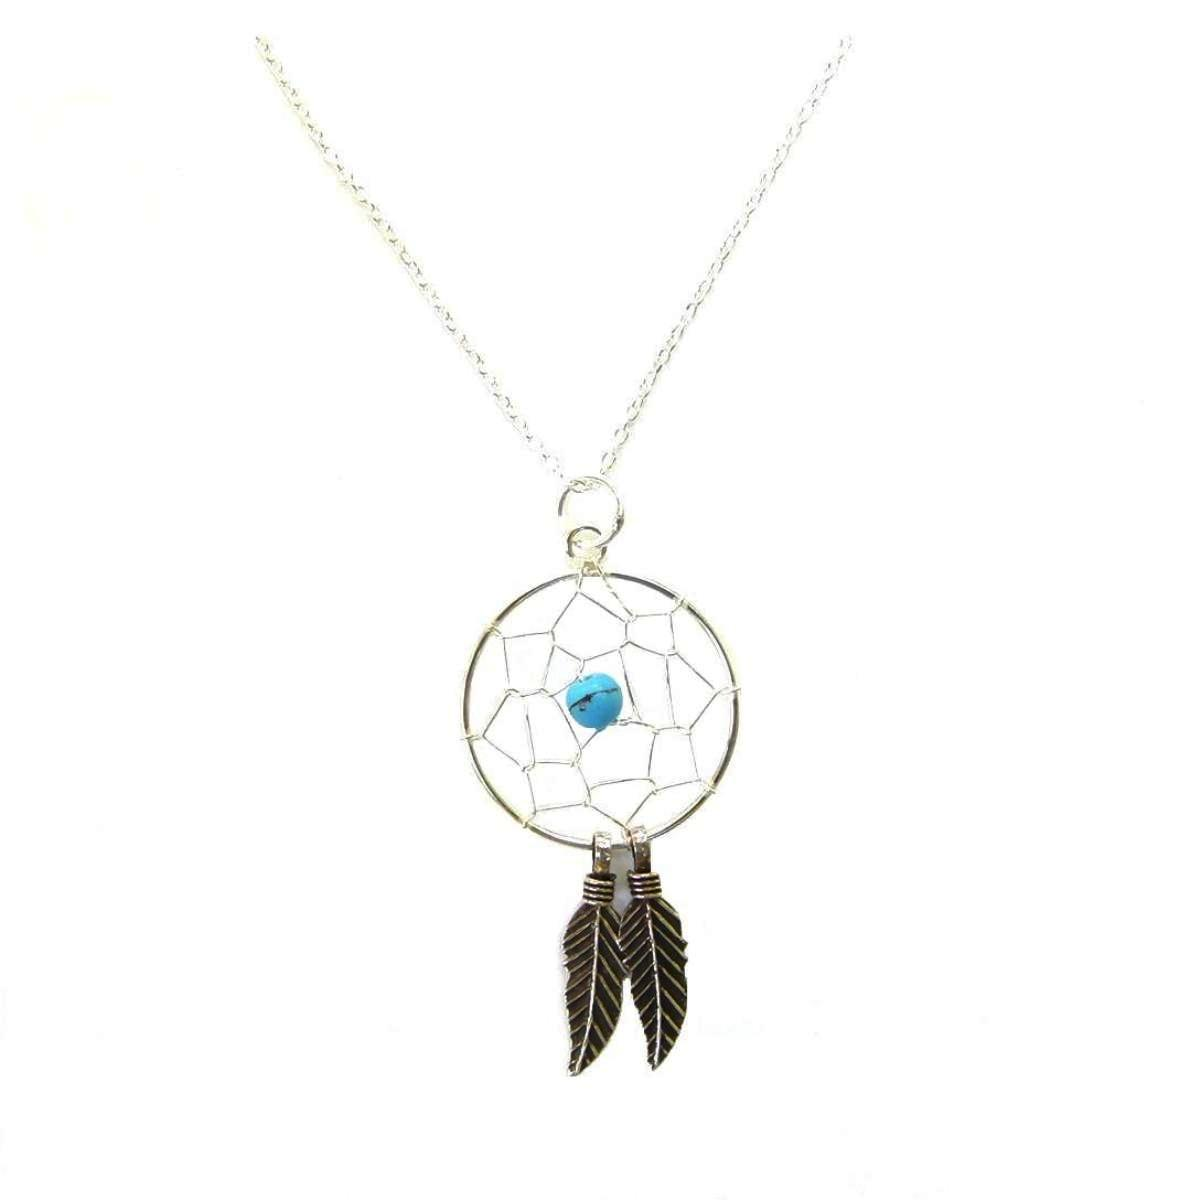 Dreamcatcher Silver Necklace.